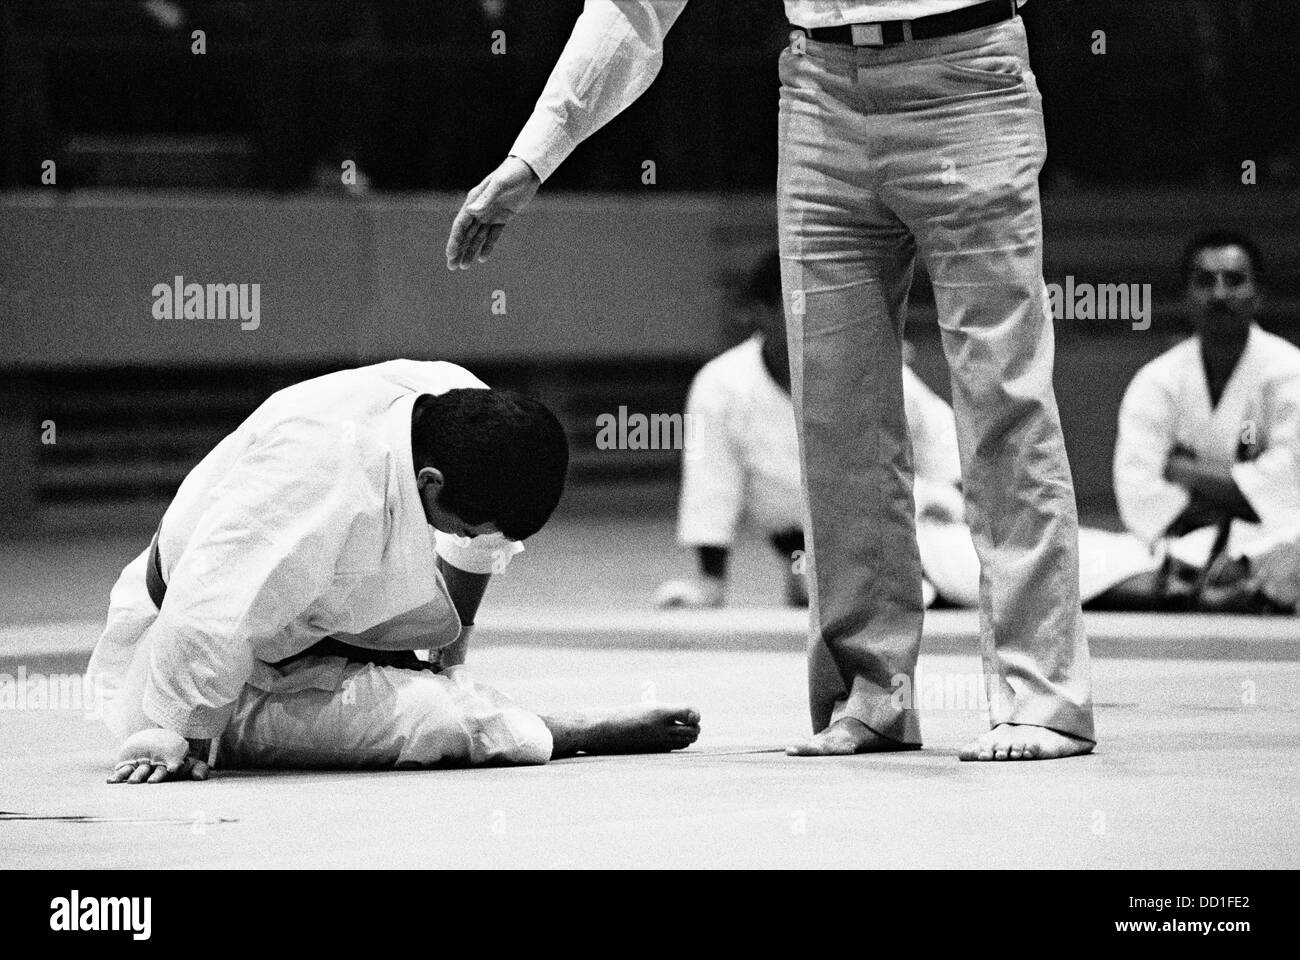 karate fight stock photos karate fight stock images alamy